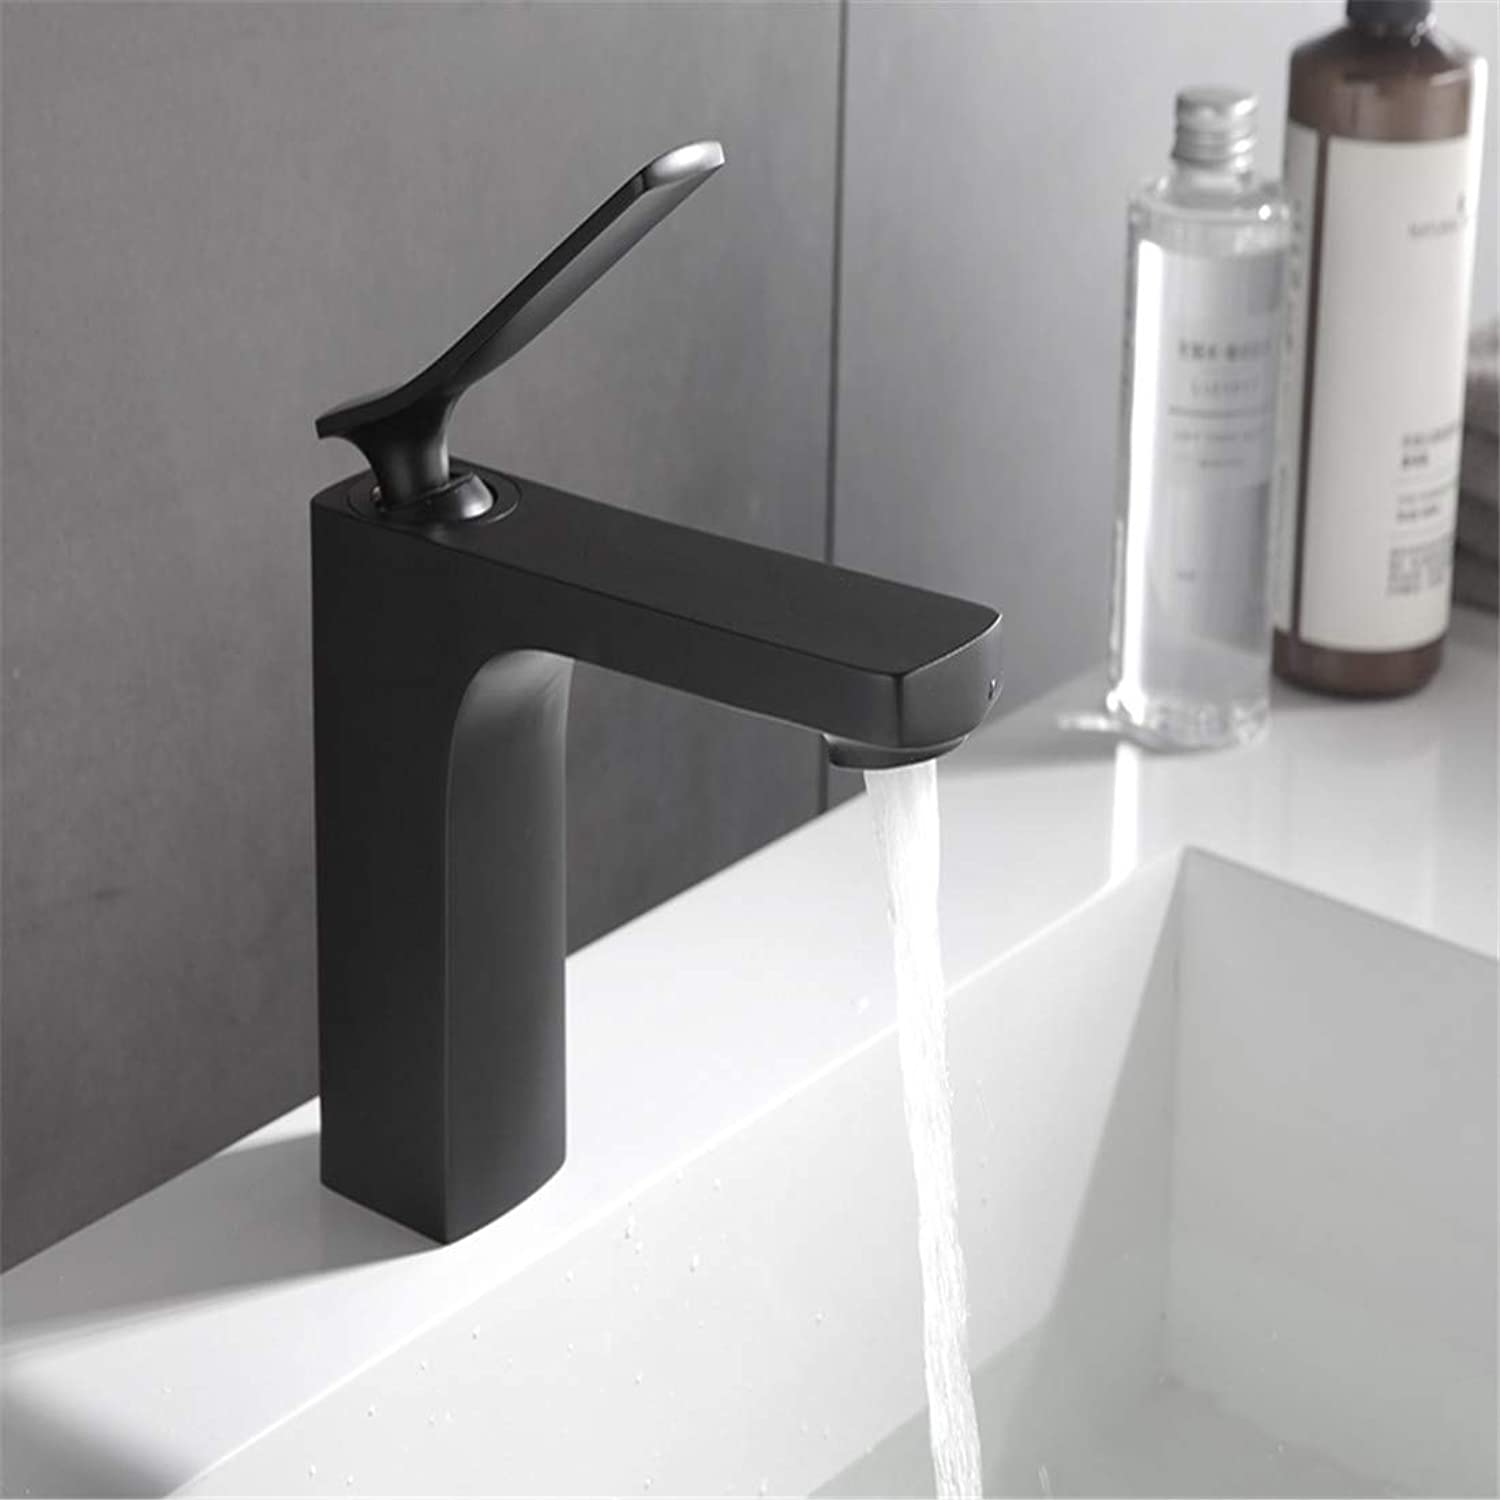 Retro Plated Hot and Cold Faucet Retromatte Black Faucet Basin Sink Mixer Tap Brass Made Single Handle